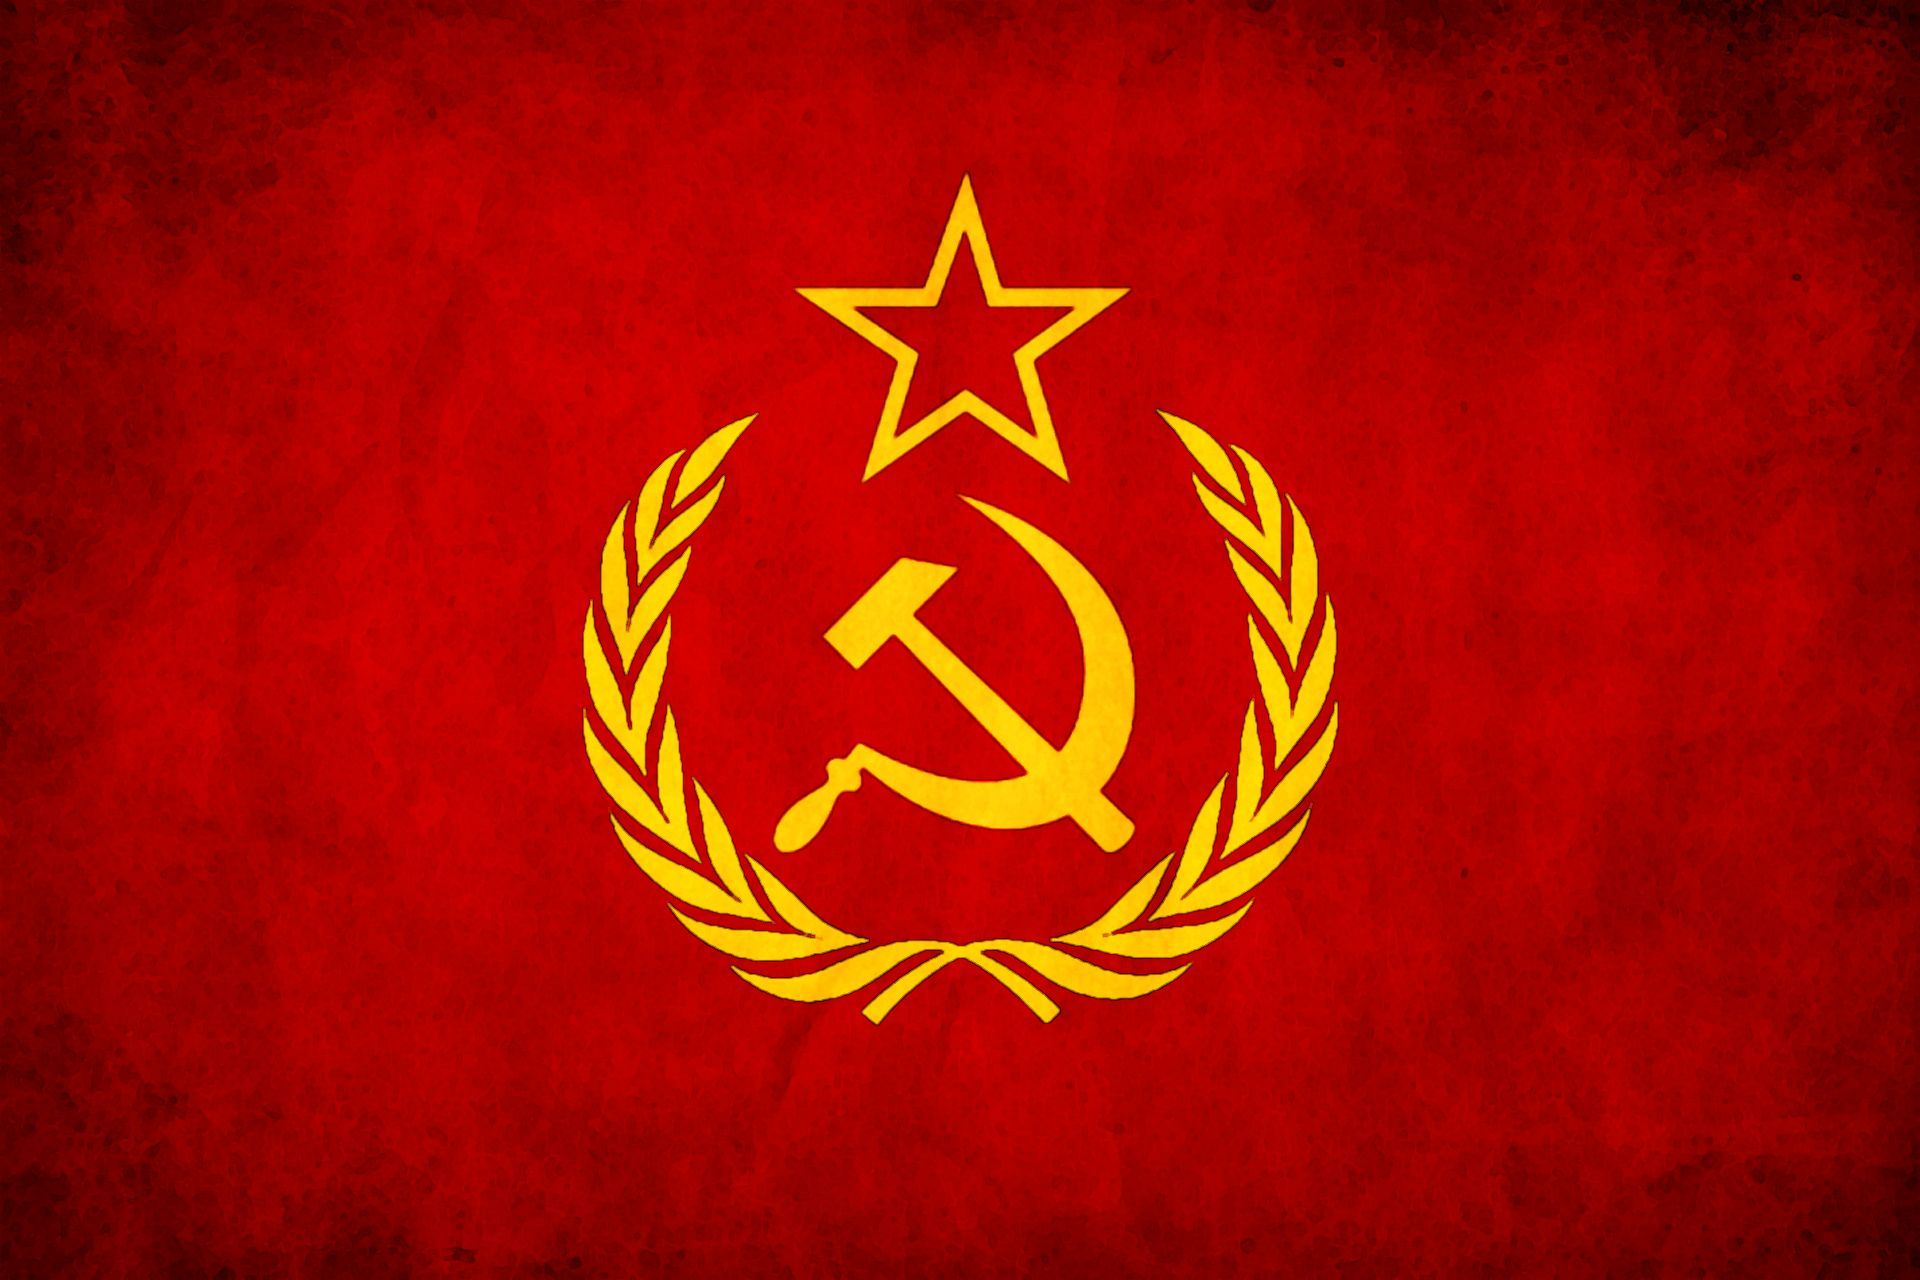 Pin On Tricouri Hammer and sickle hd wallpaper